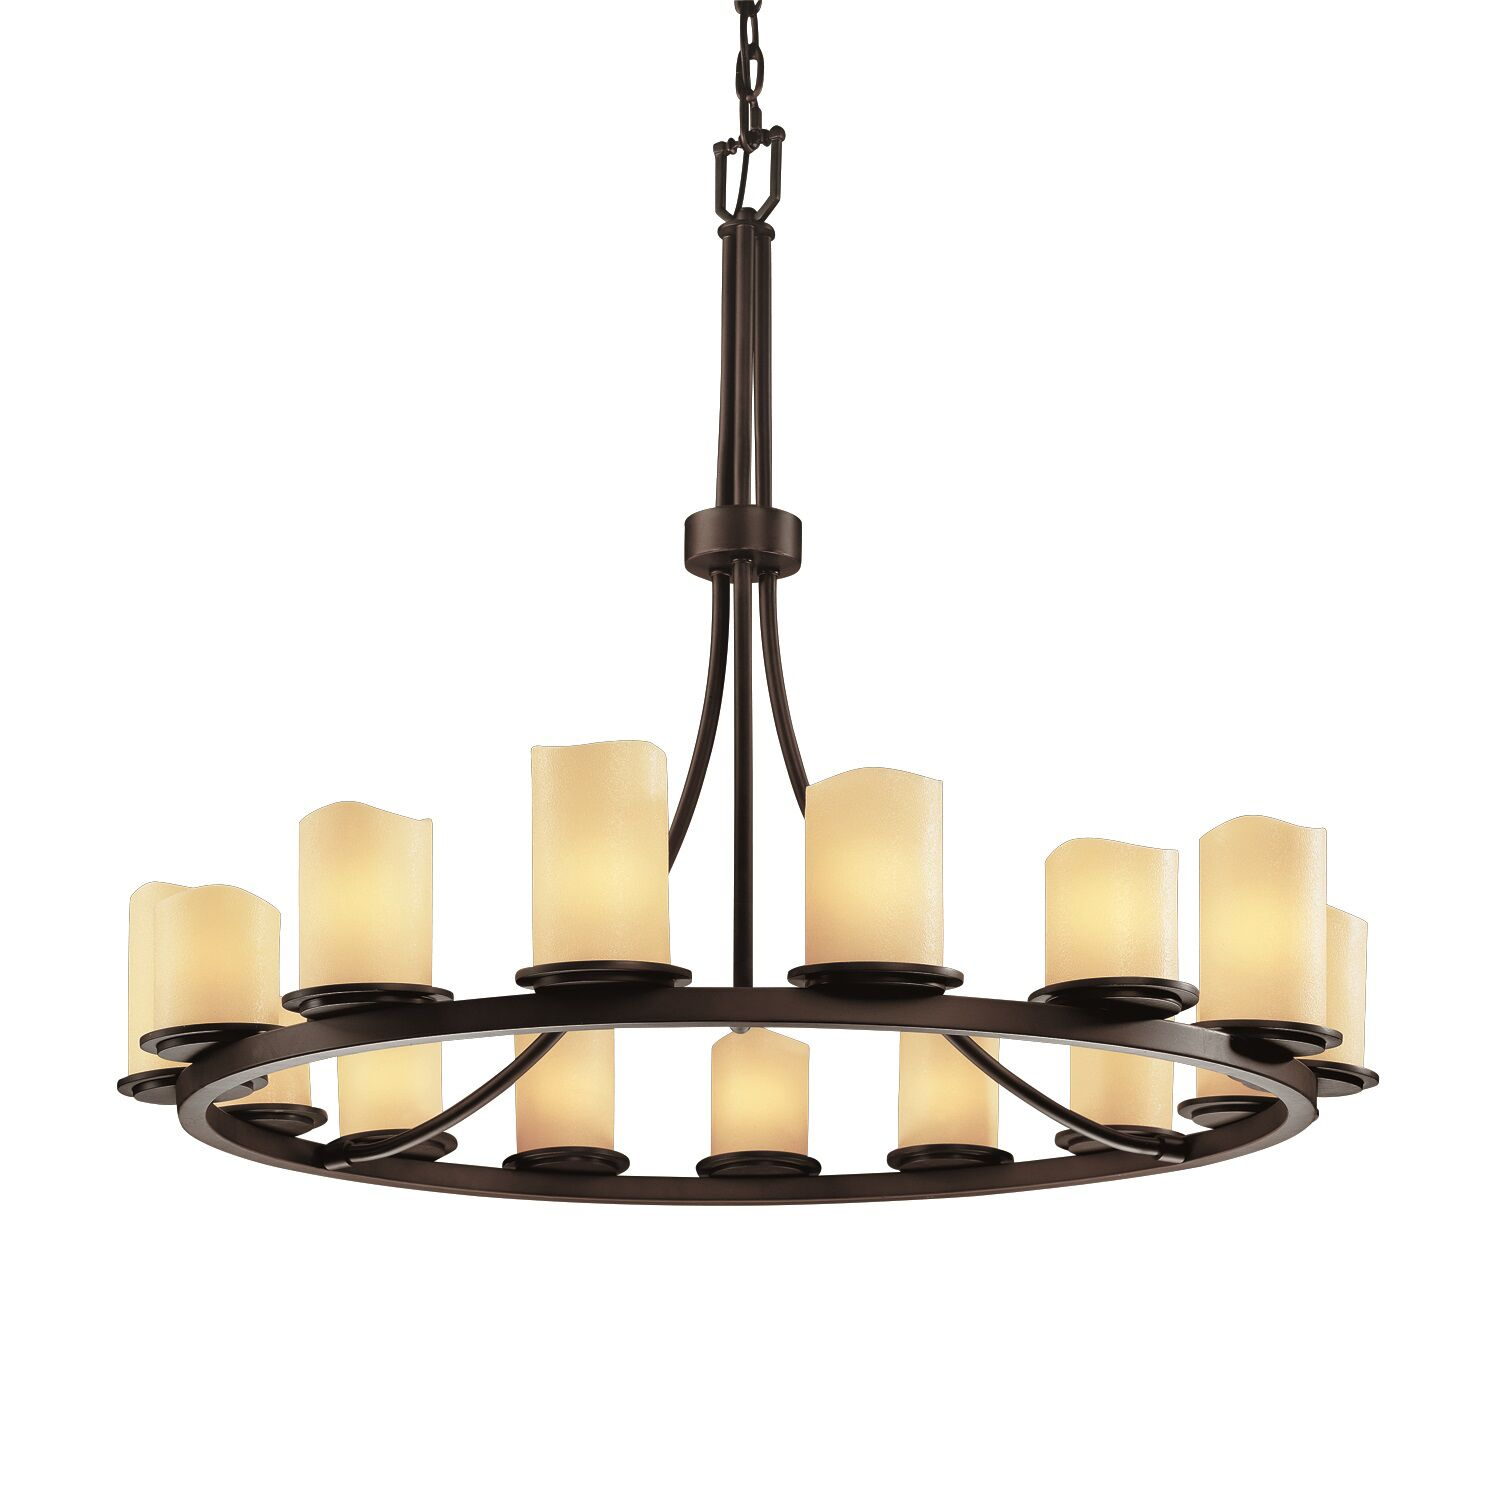 Soraya 15 Light Chandelier Shade Option: Cylinder with Melted Rim, Shade Color: Amber, Metal Finish: Matte Black